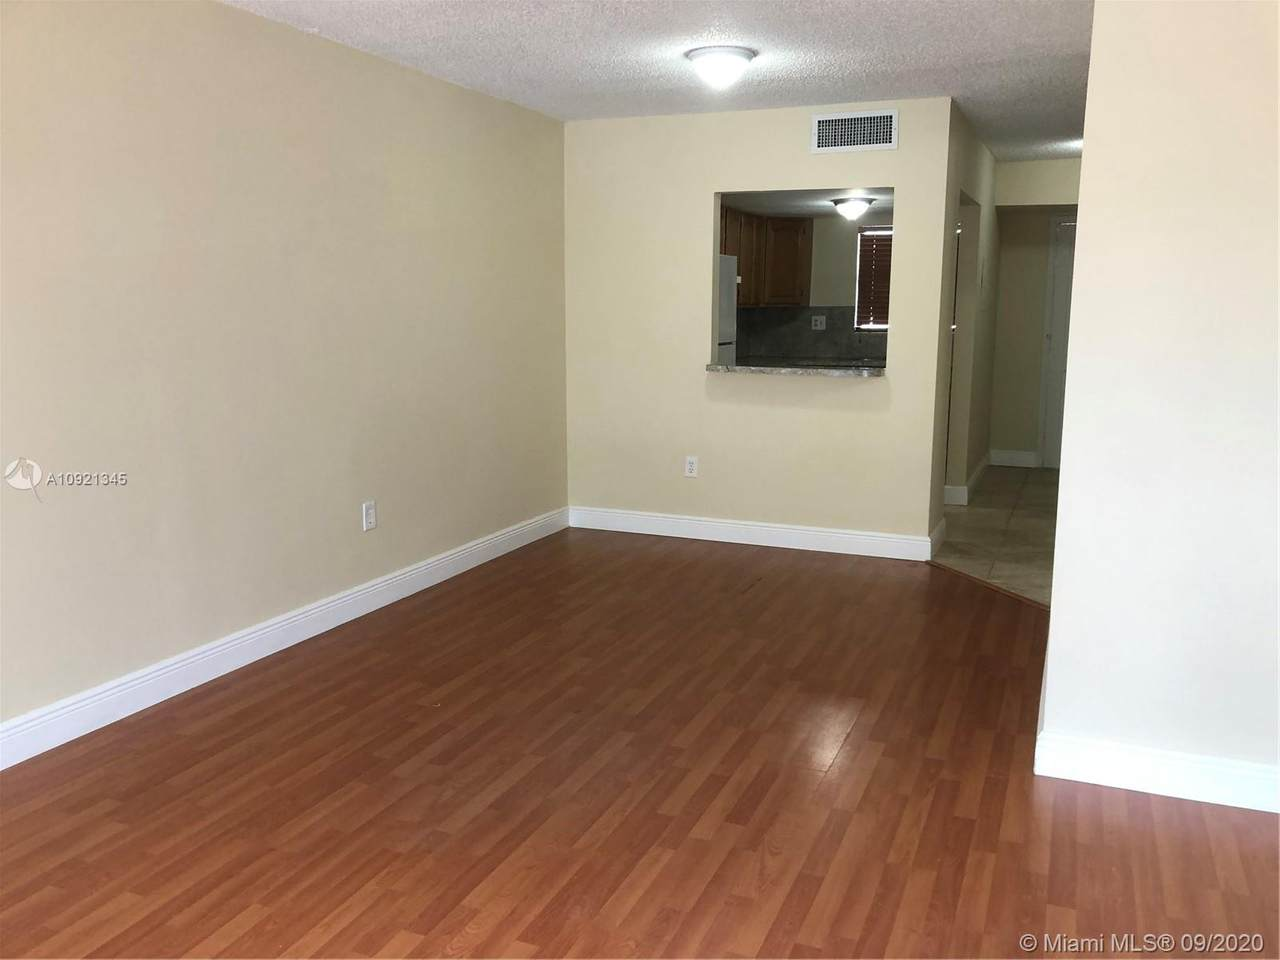 9357 Fontainebleau Blvd - Photo 1